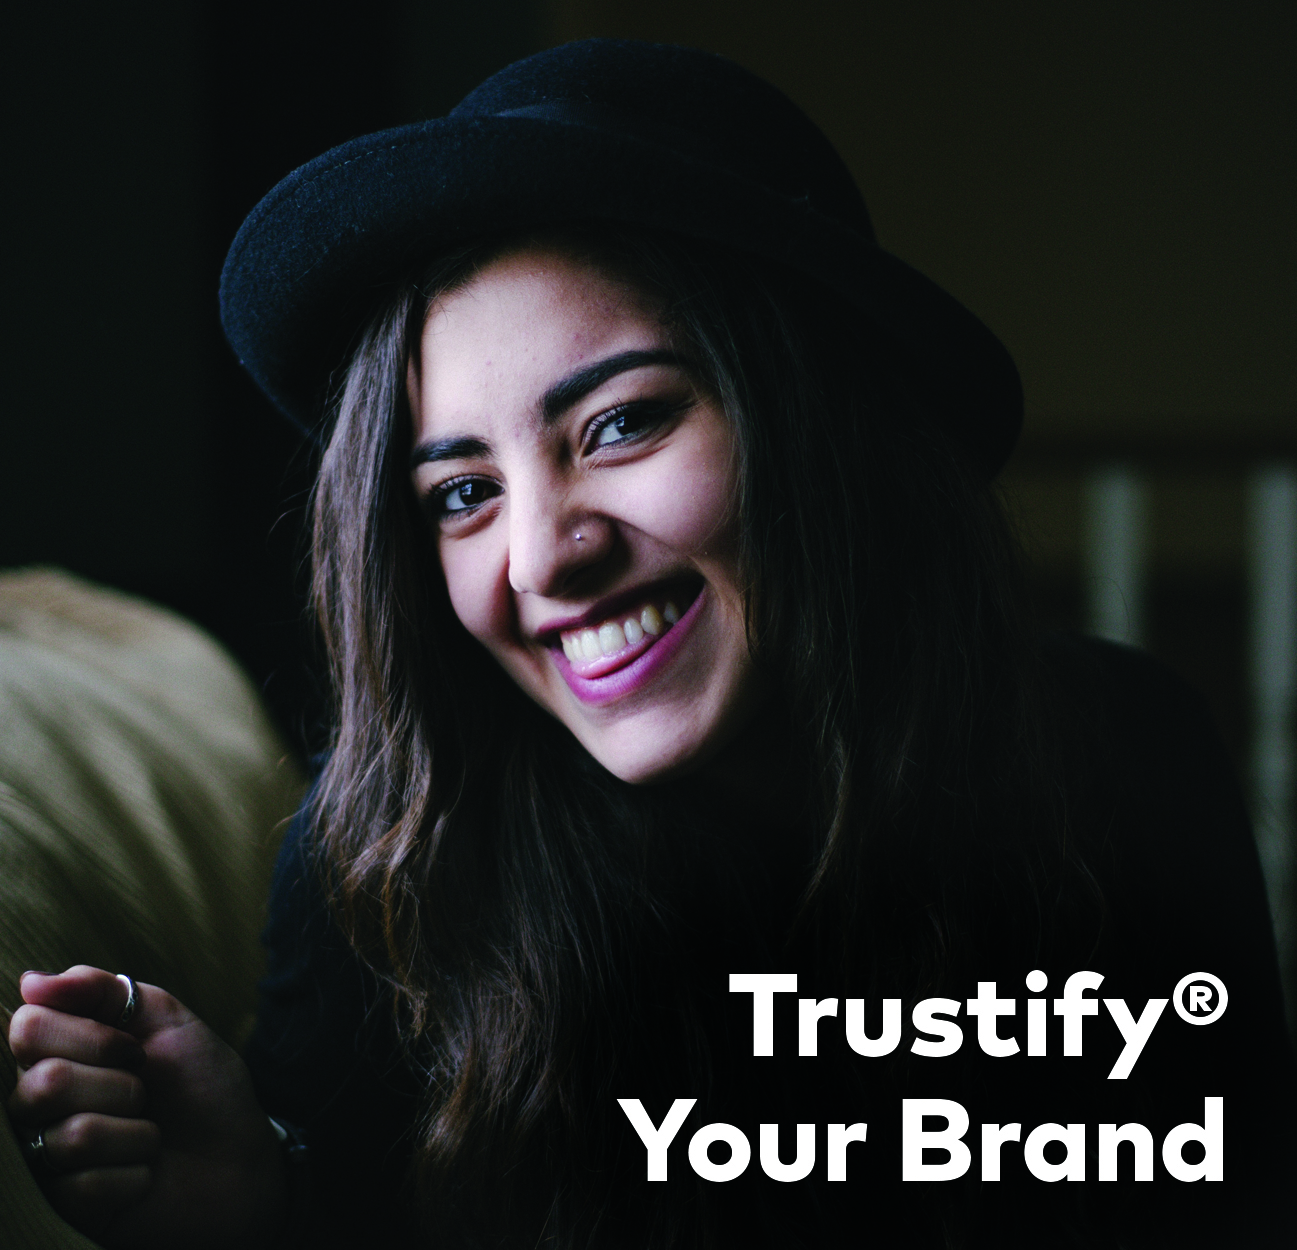 Mext_Consulting_Firm_Melbourne_Trust_Trustify_Your_Brand_Label.jpg